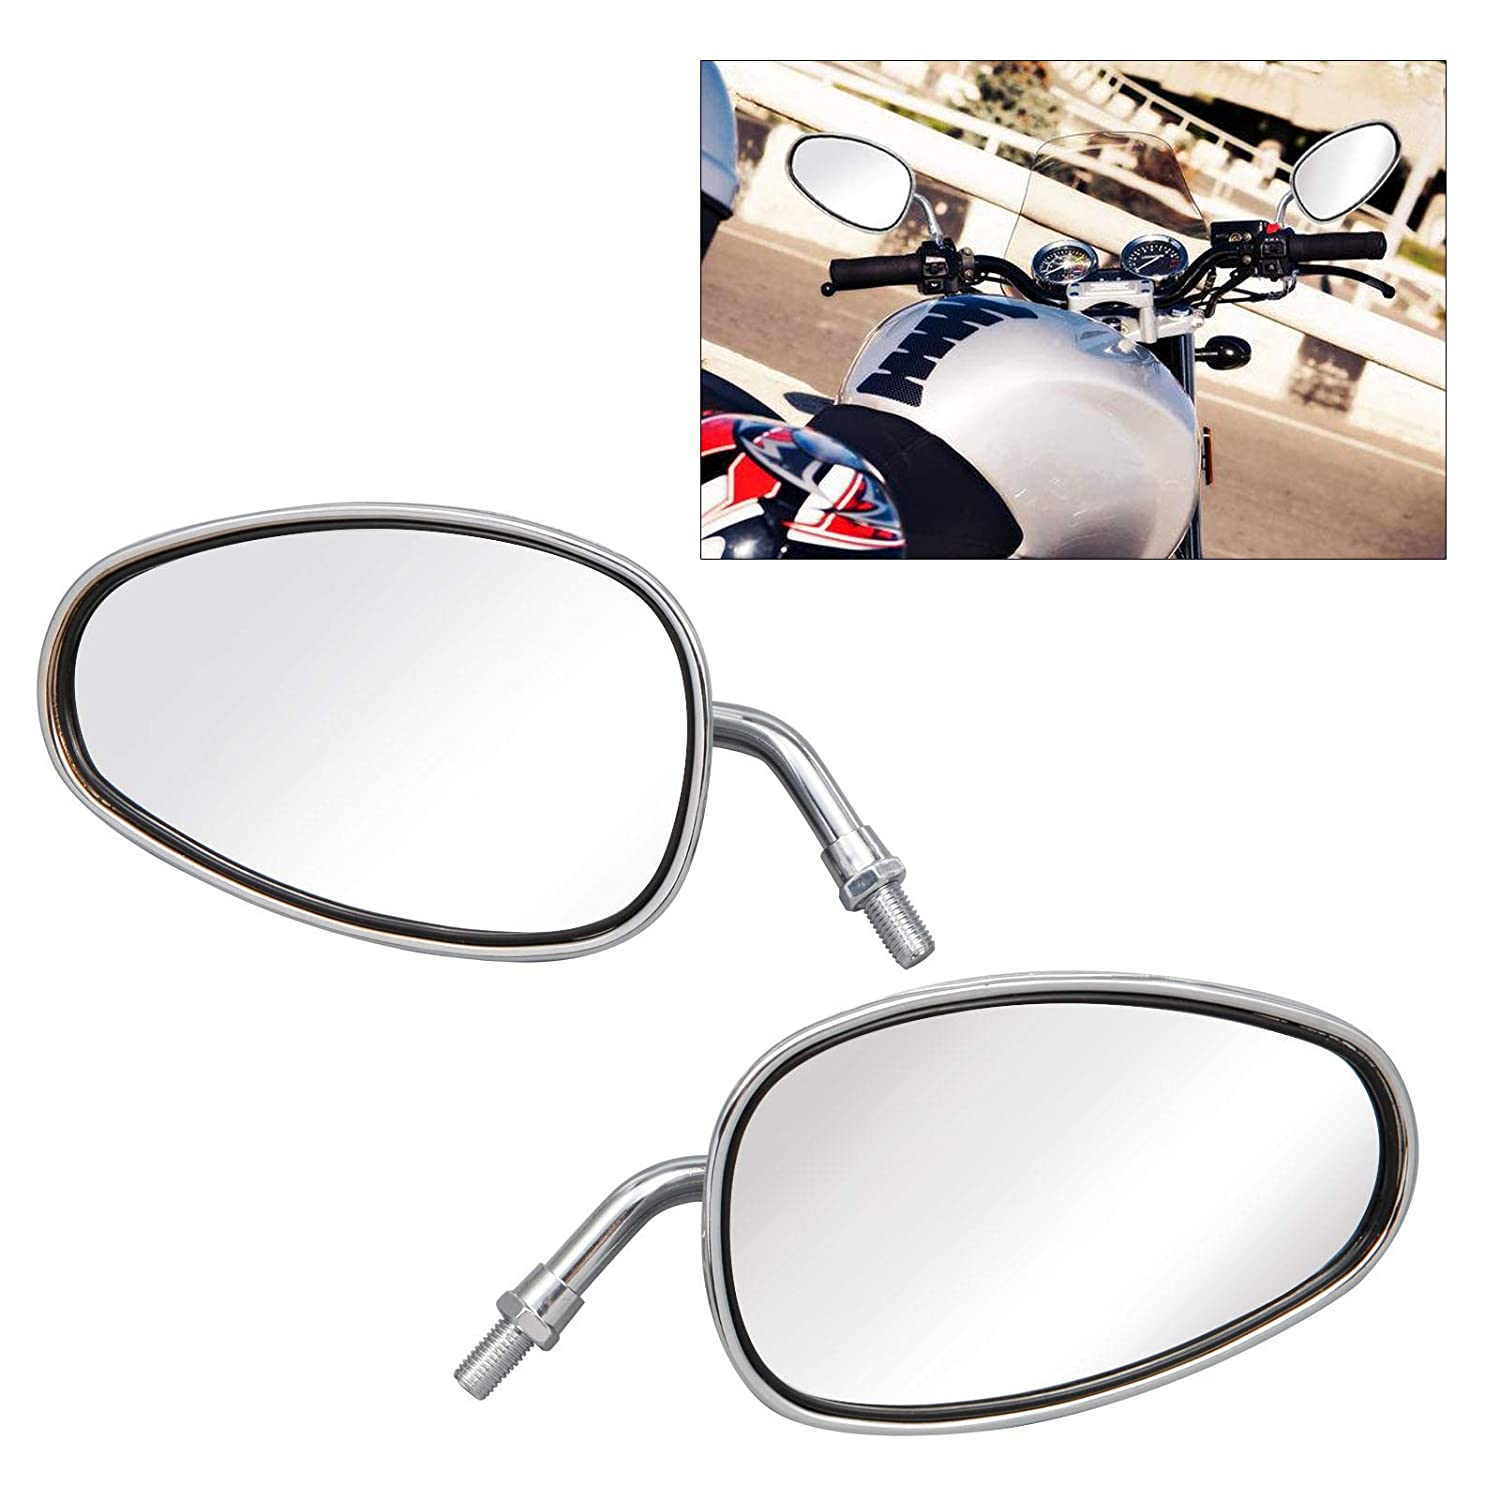 SurePromise Motorcycle Aluminum Side Rear View Mirror 10MM Chrome Silver Large for Scooters Street Bike Motorbike